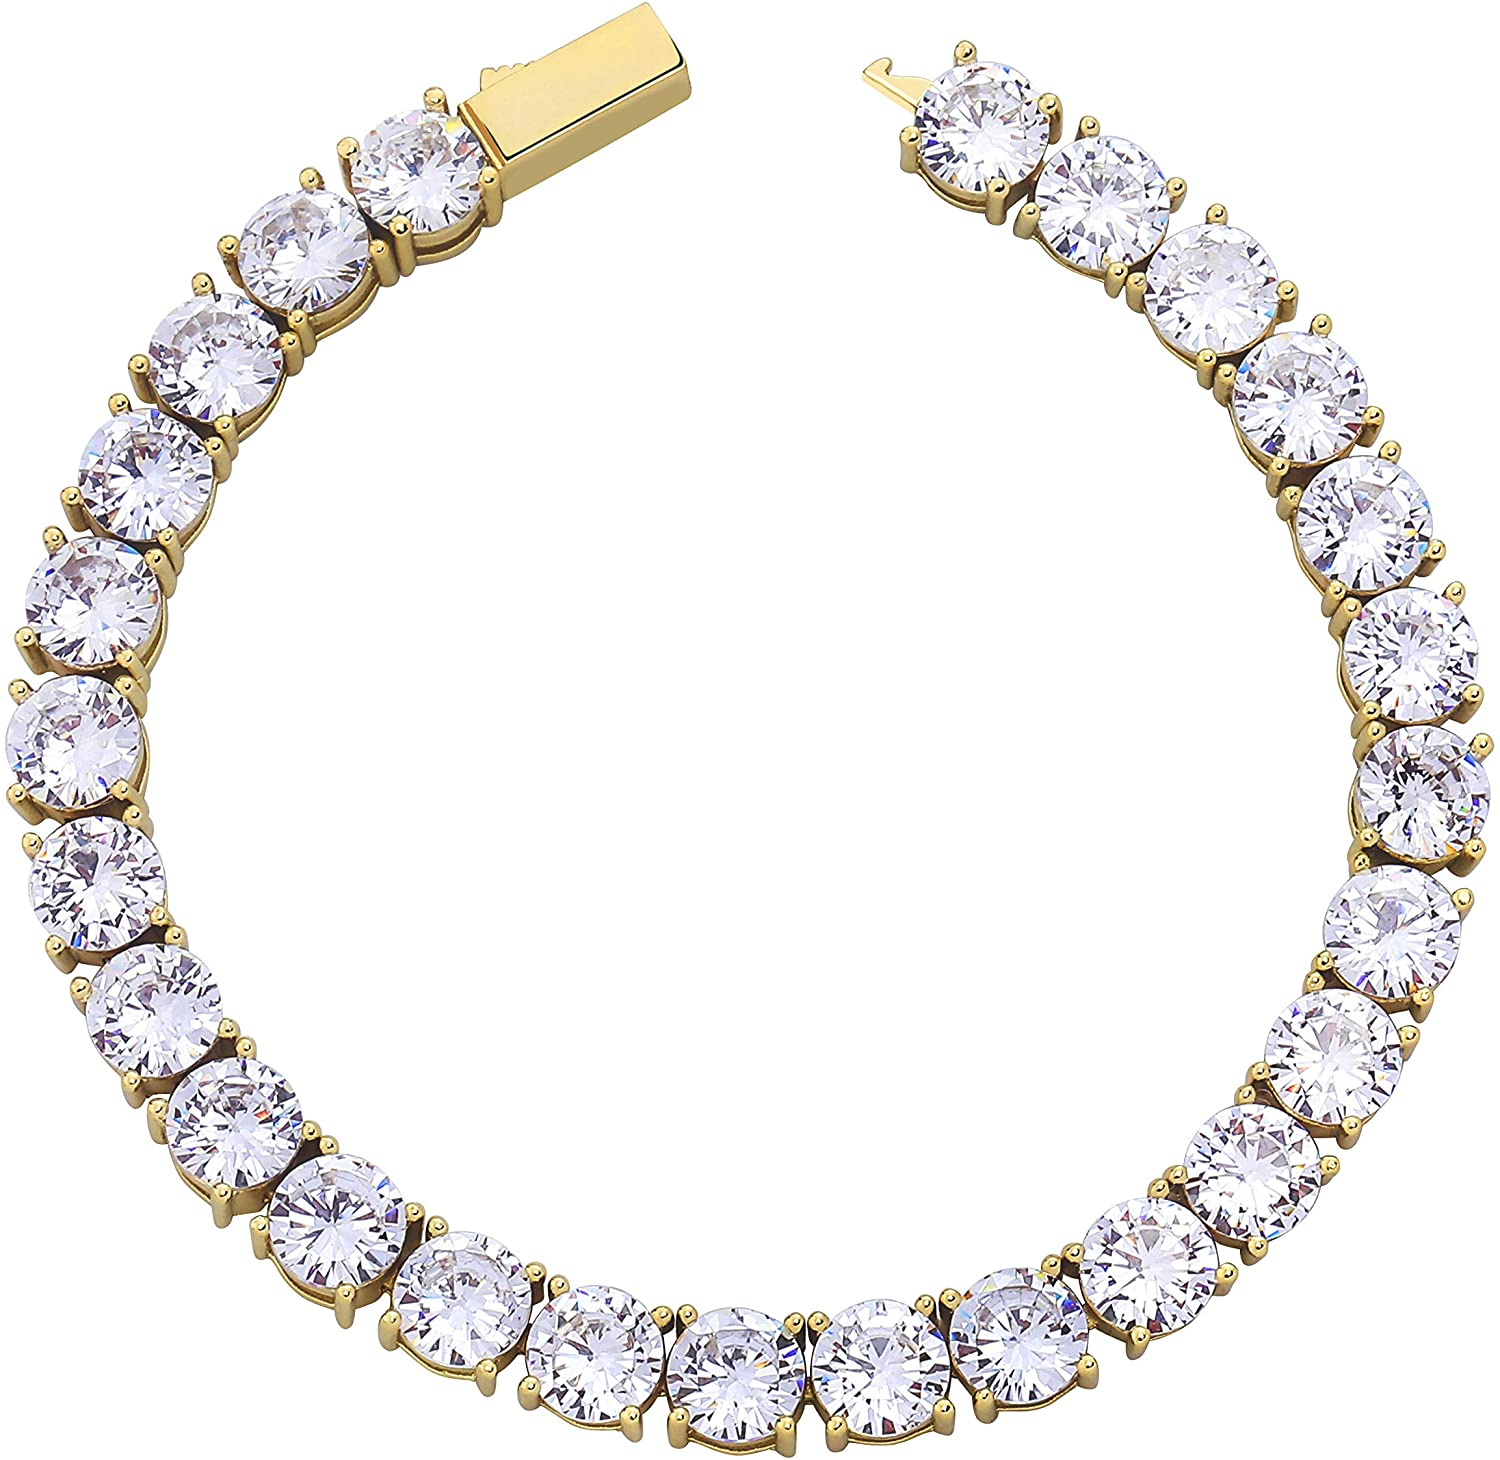 TOPGRILLZ 1 Row 3-6 mm 14K Gold Plated Iced Out Tennis Diamond Bracelet for Men Women